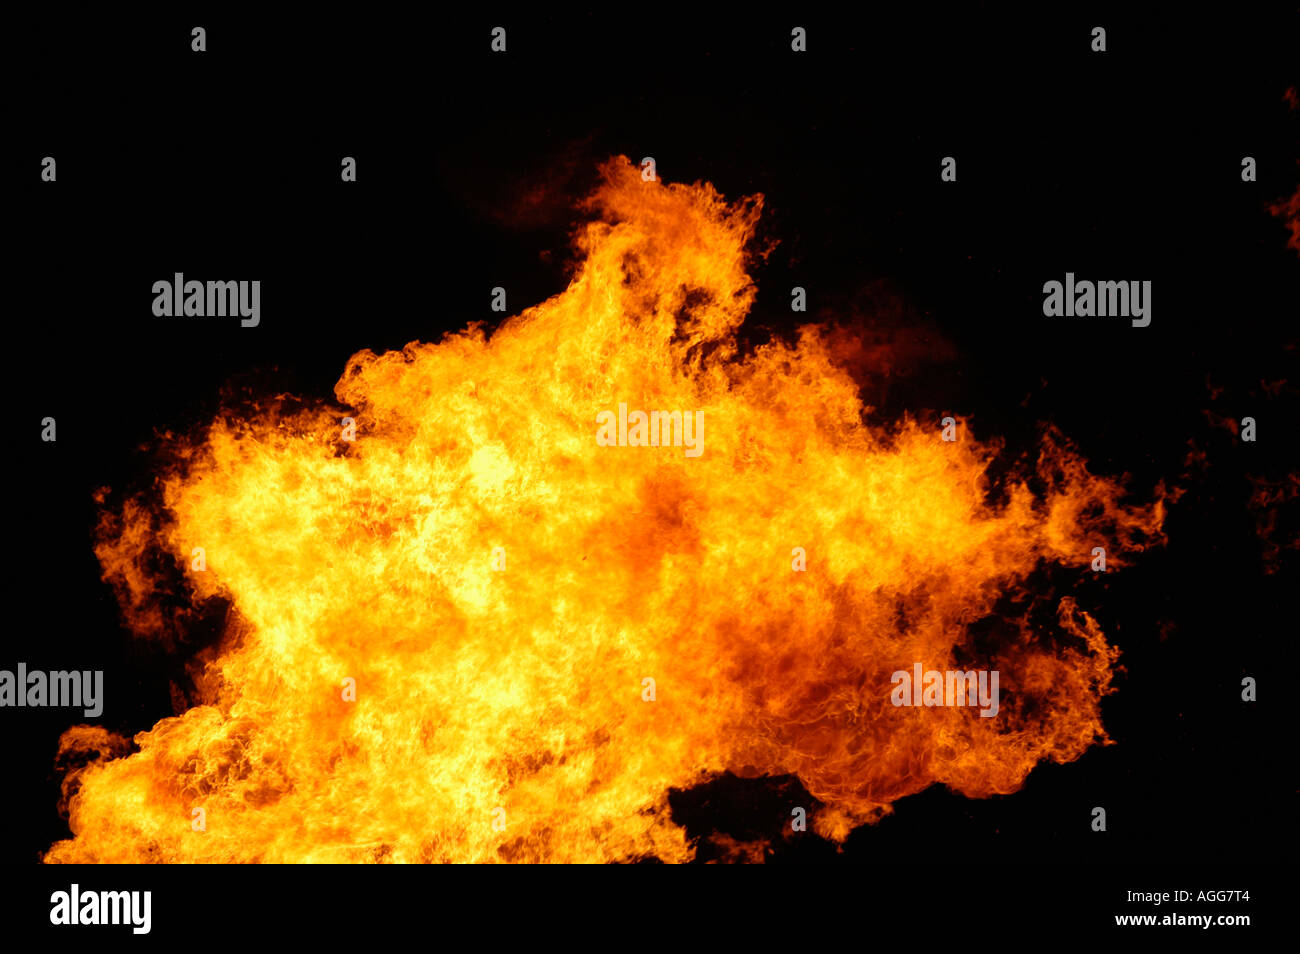 flame of blazing fire - Stock Image